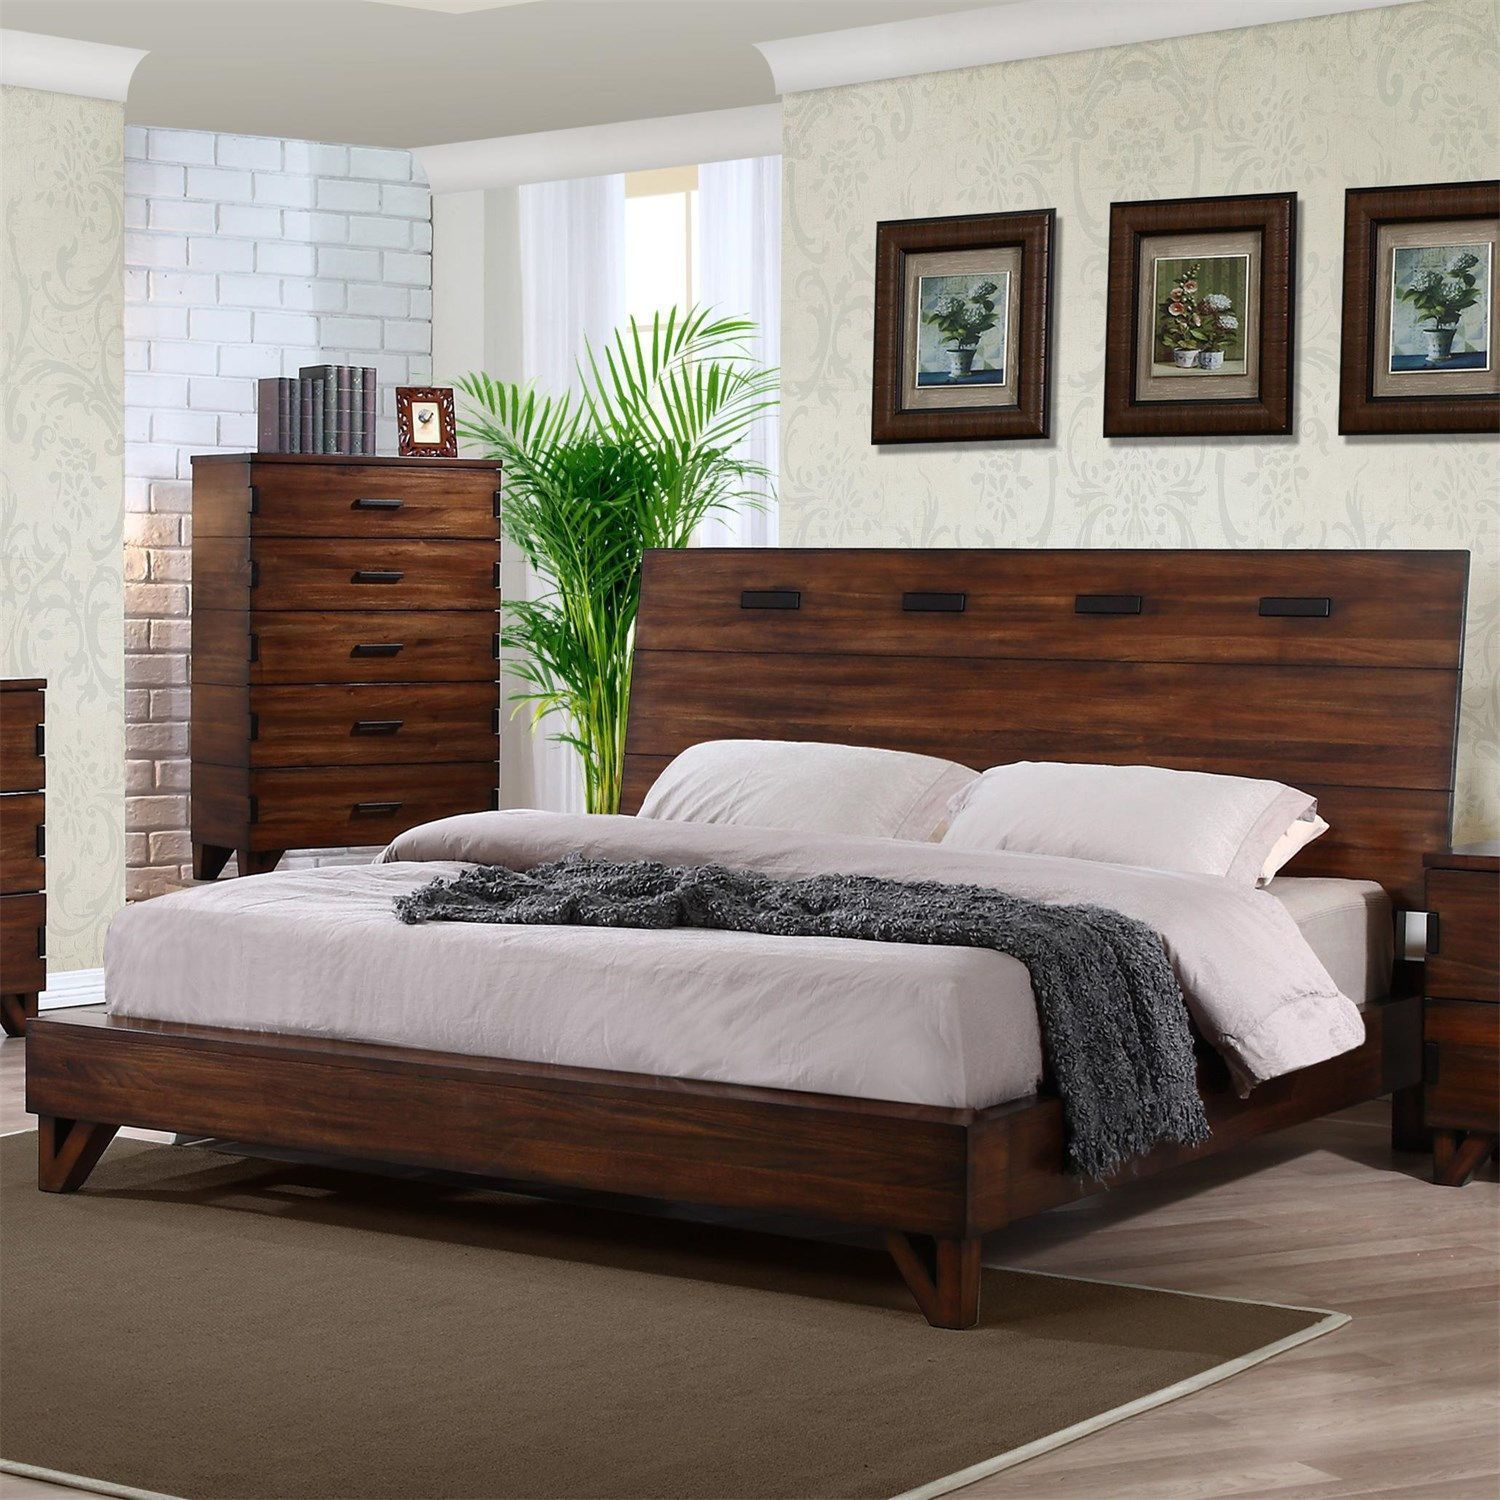 Avalon Collection By Coaster 999 Includes Queen Bedframe Dresser